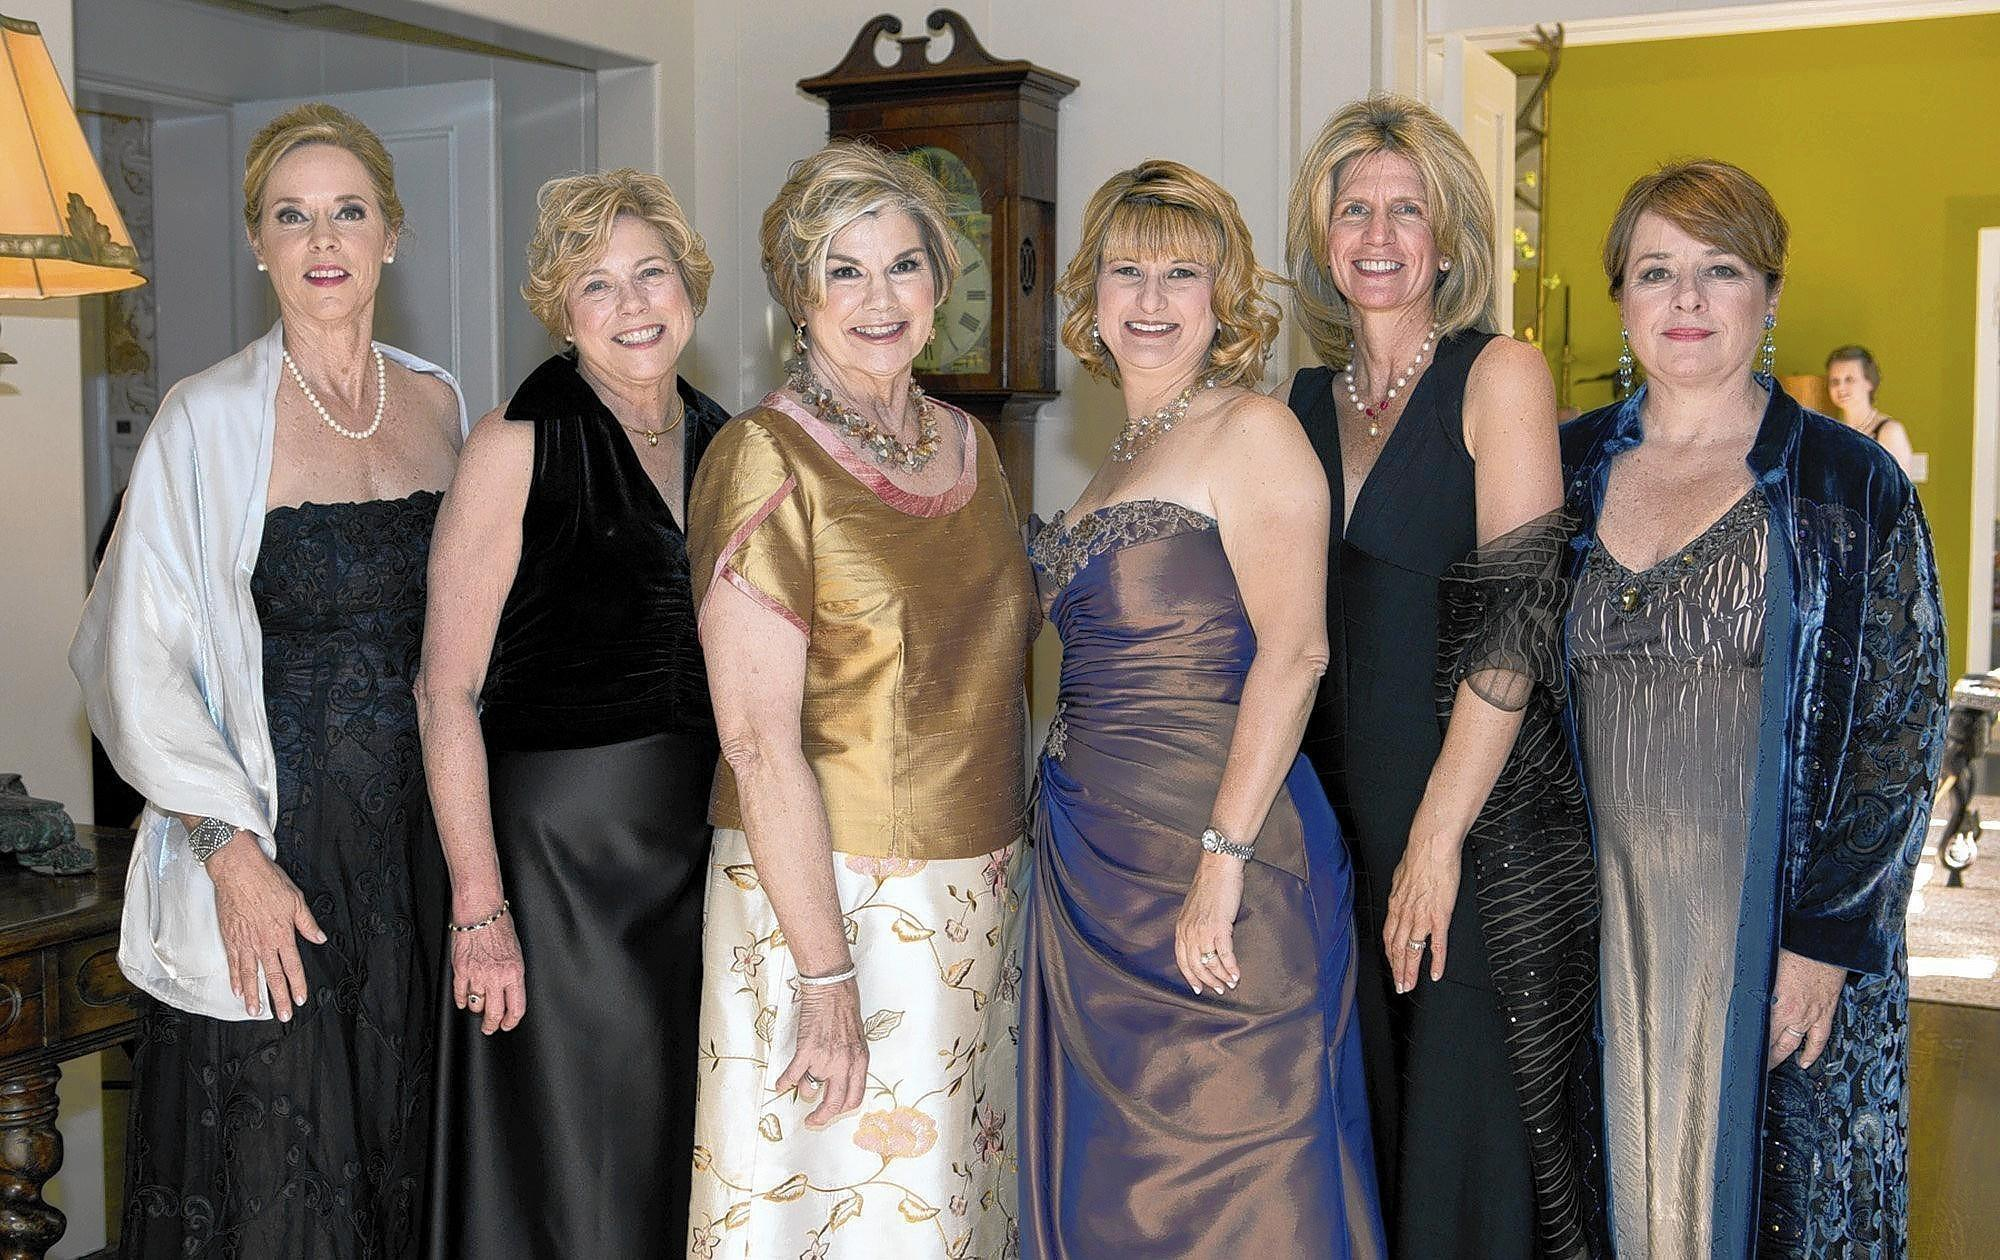 The core team of the 2014 Pasadena Showcase House of Design are, from left, exterior chair Karen Butcher; benefit assistant Marti Farley, benefit chair Mary Ann Clayton; President Donna Gotch; exterior chair Annette Sellon and interior chair Karol Franks. They're looking glamorous at the premiere opening night party of the Showcase House.